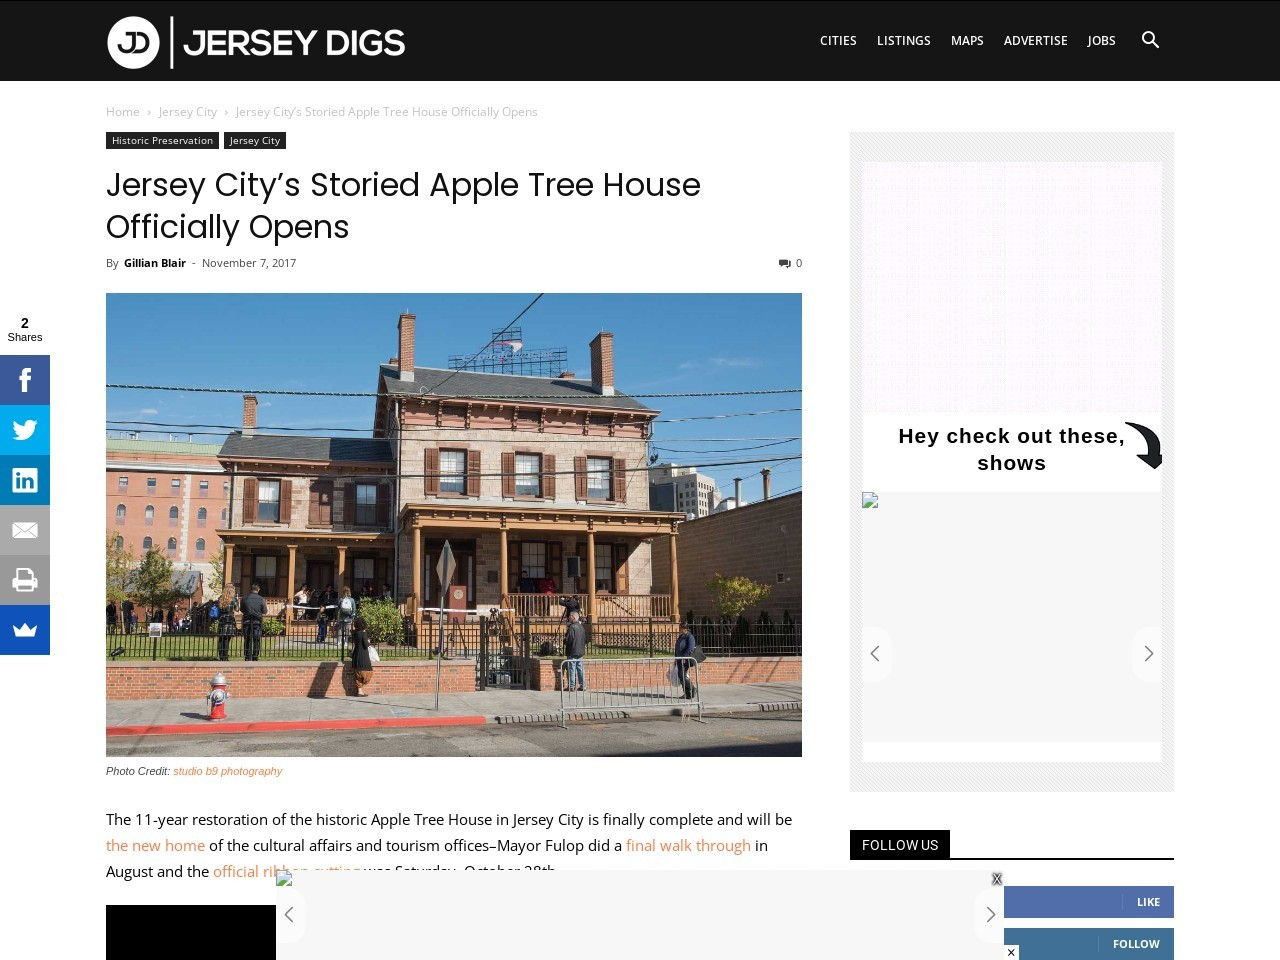 Jersey City's Storied Apple Tree House Officially Opens